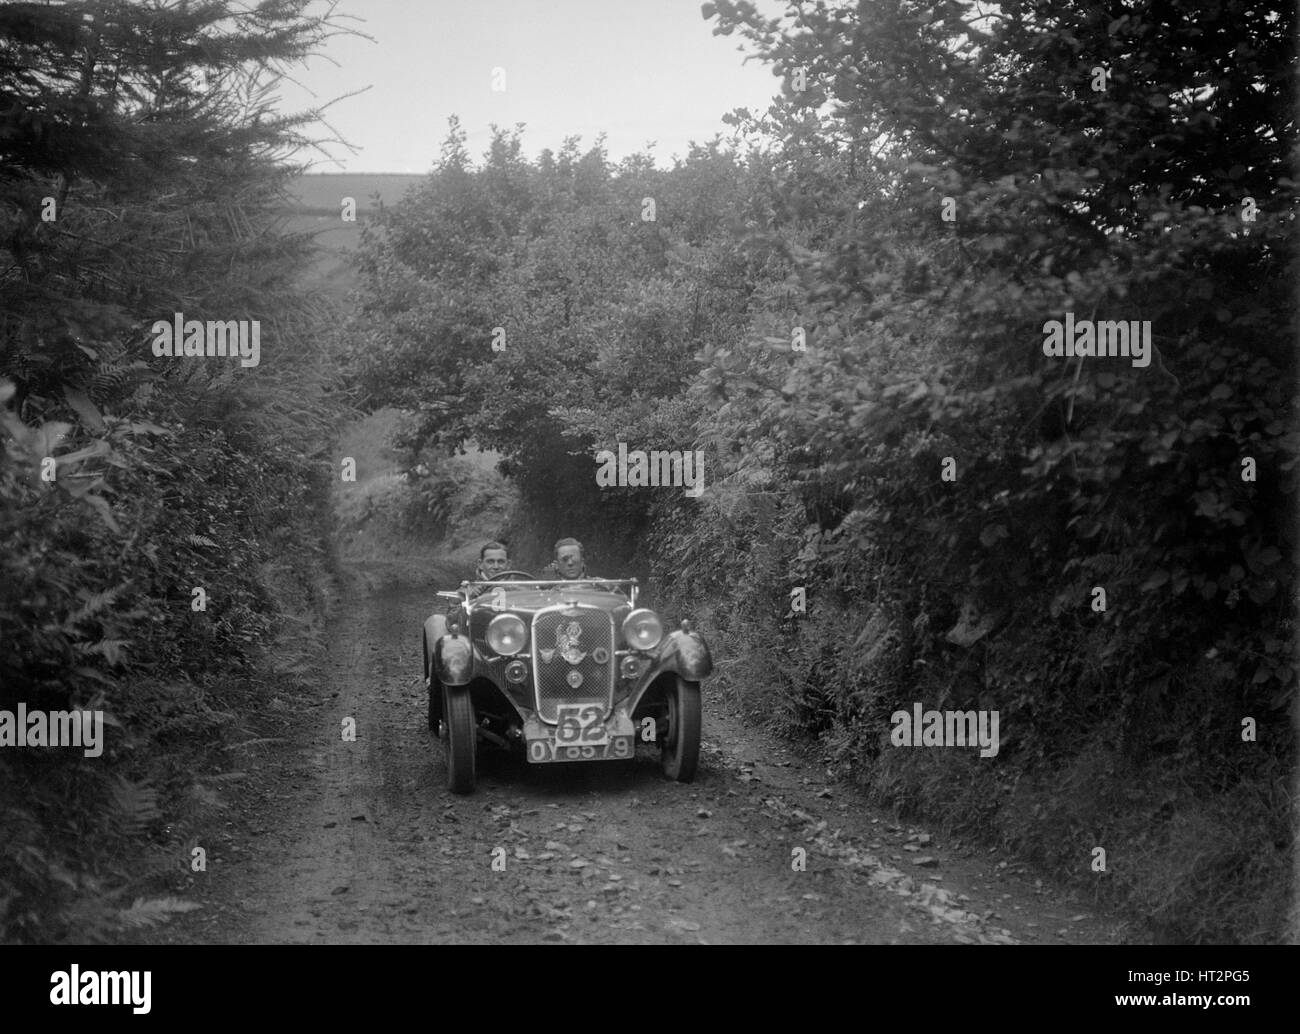 Singer open 2-seater competing in the Mid Surrey AC Barnstaple Trial, 1934. Artist: Bill Brunell. - Stock Image